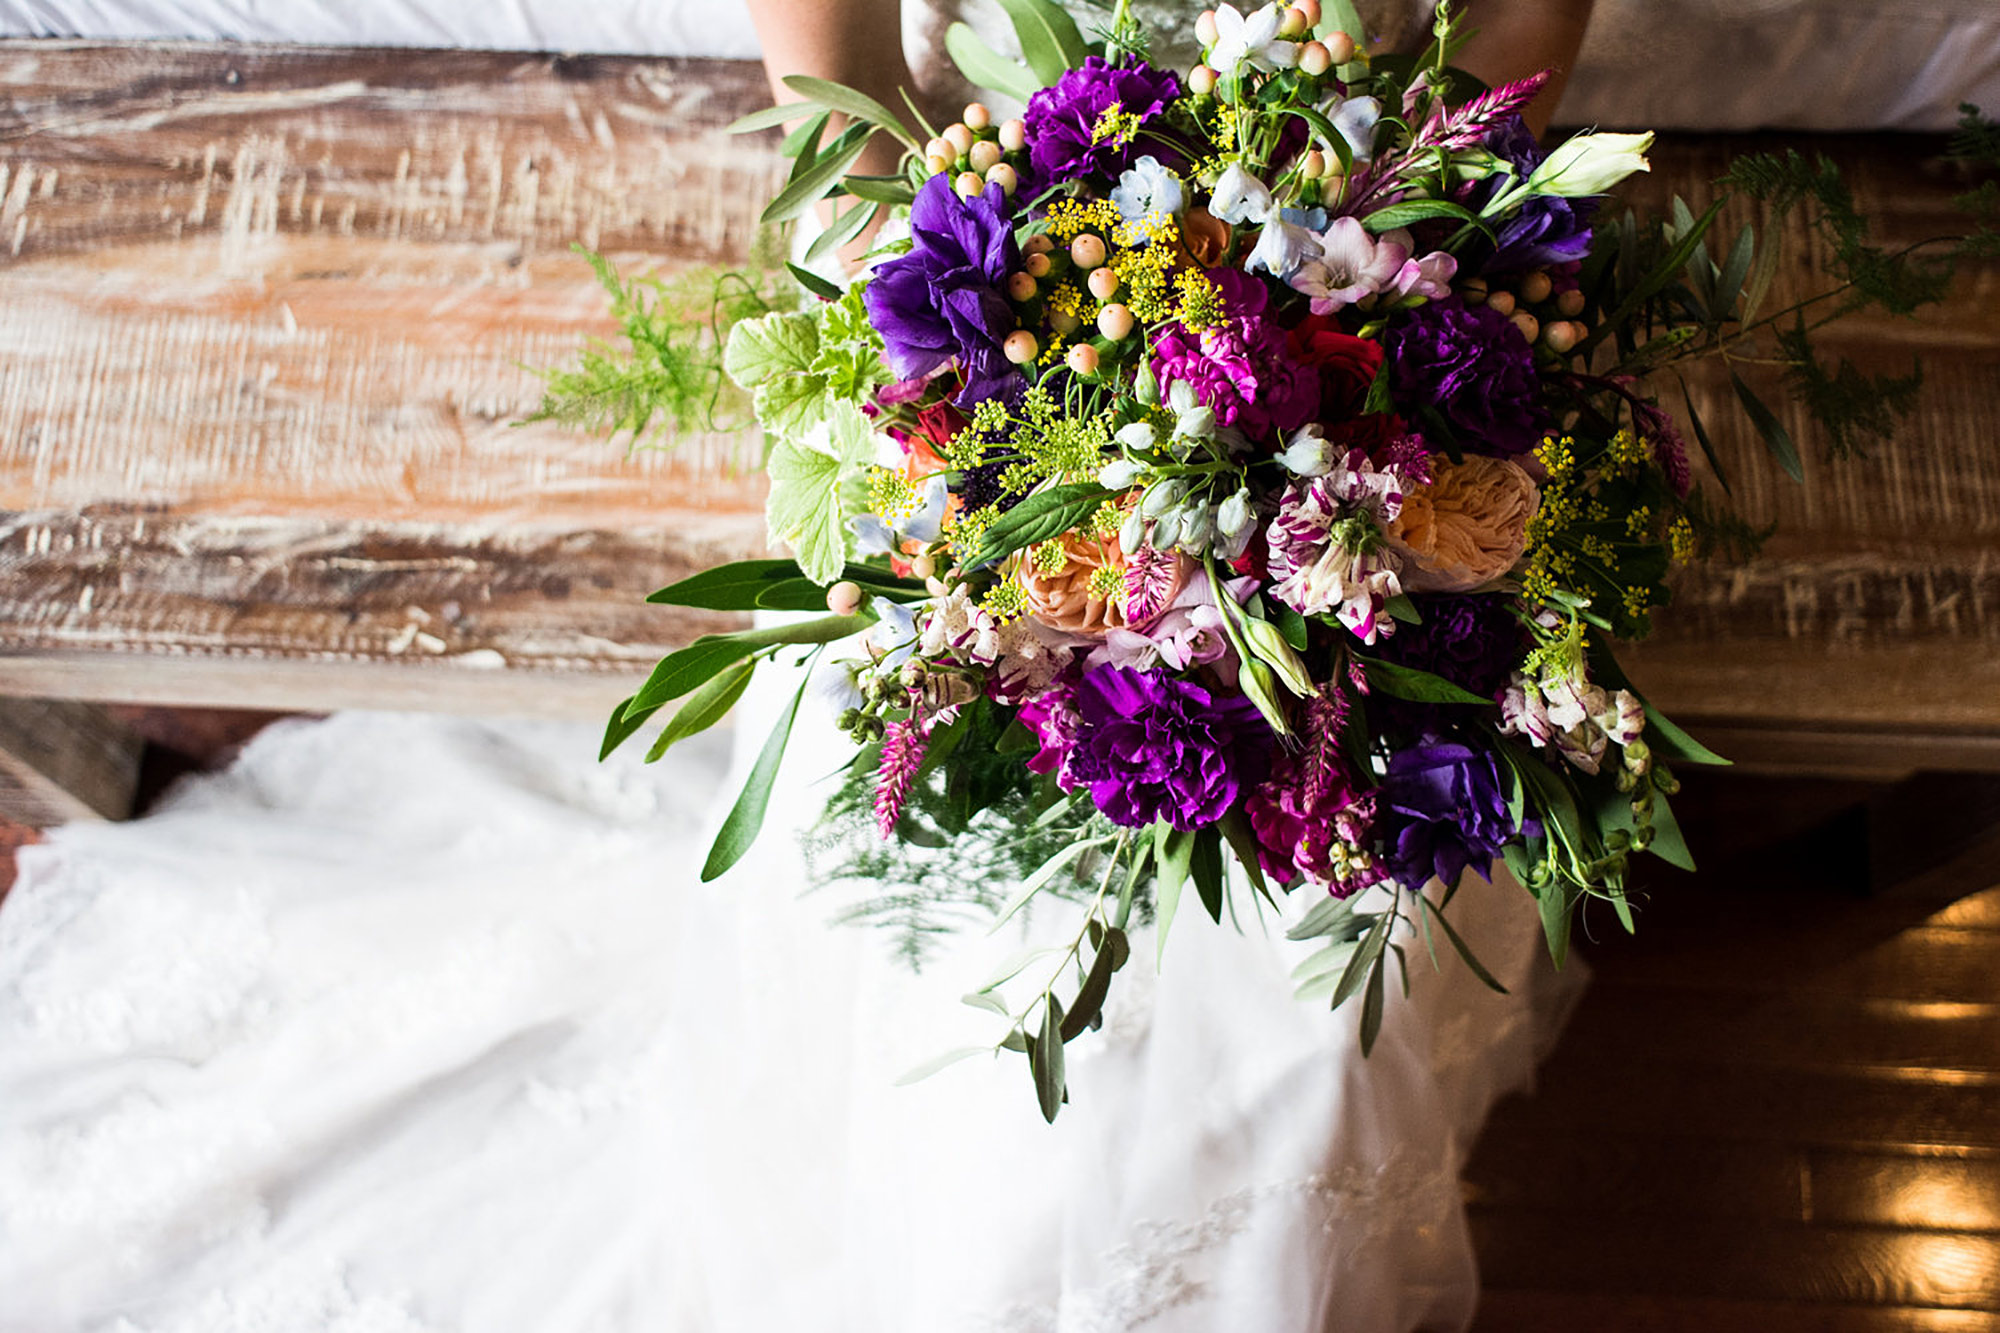 bride sitting on bench with flower bouquet 2000px.jpg